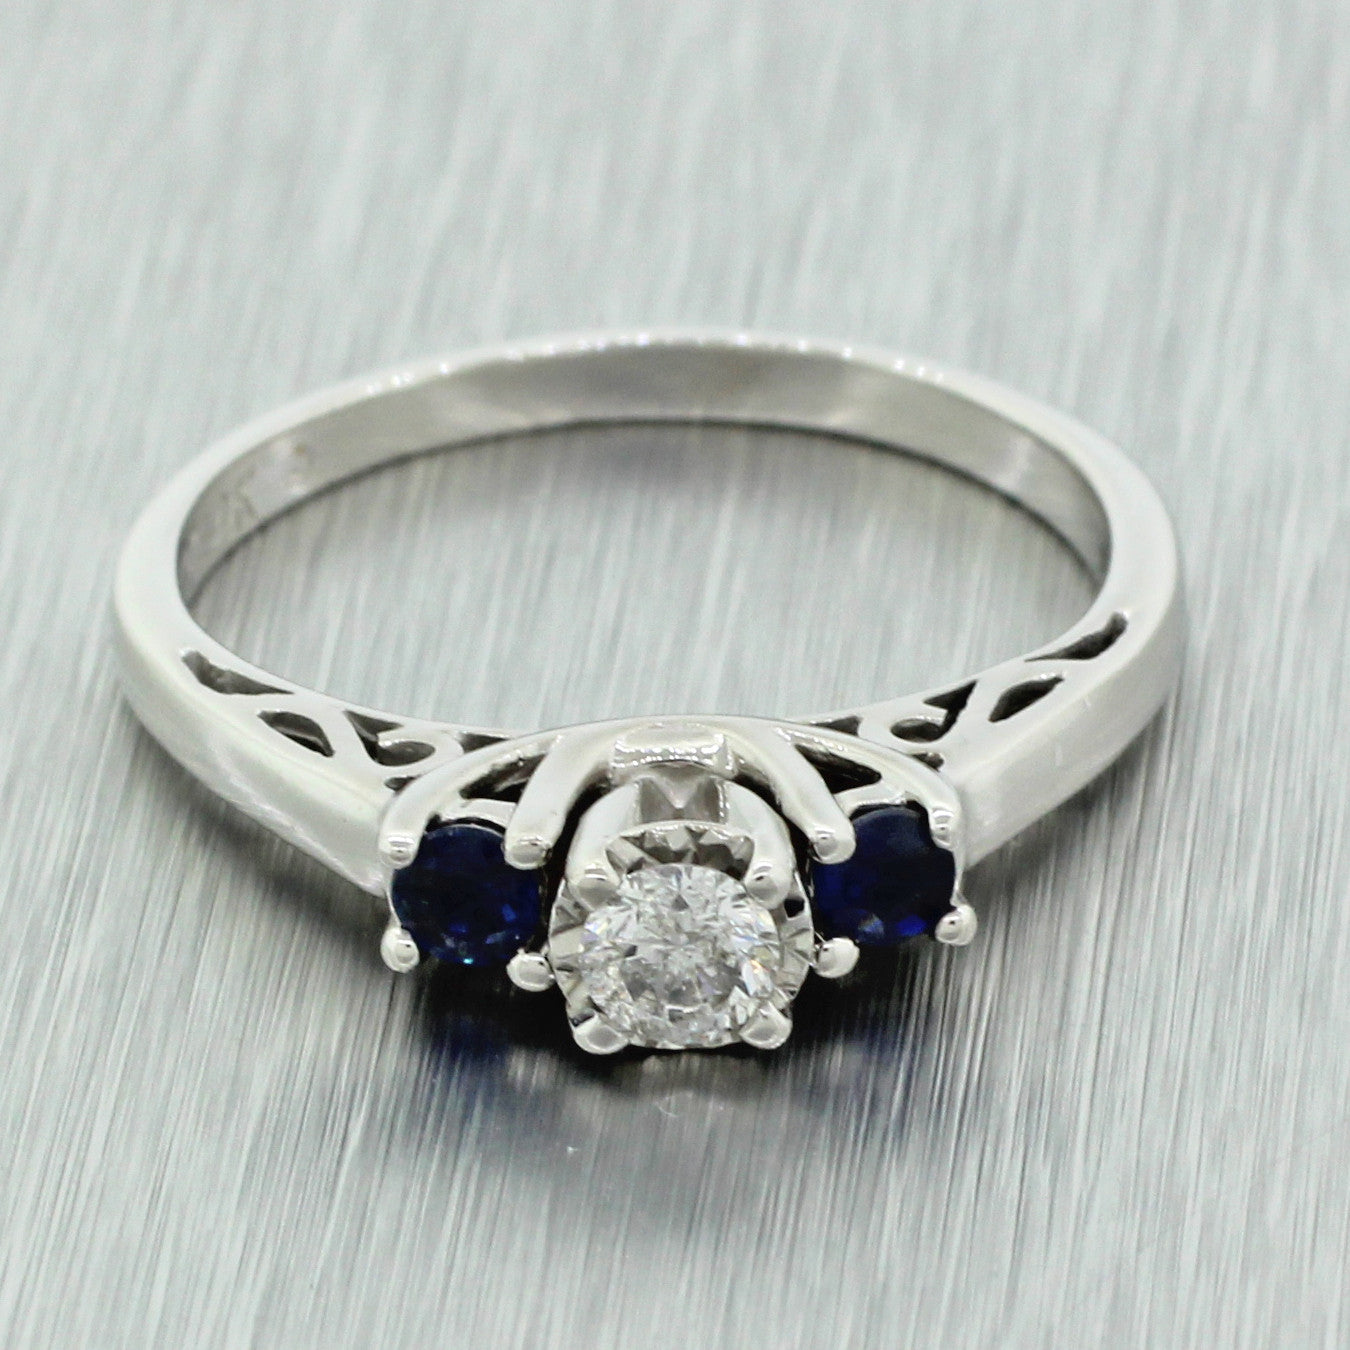 Vintage Estate 14k Solid White Gold .15ct Diamond Engagement Ring w. Sapphire